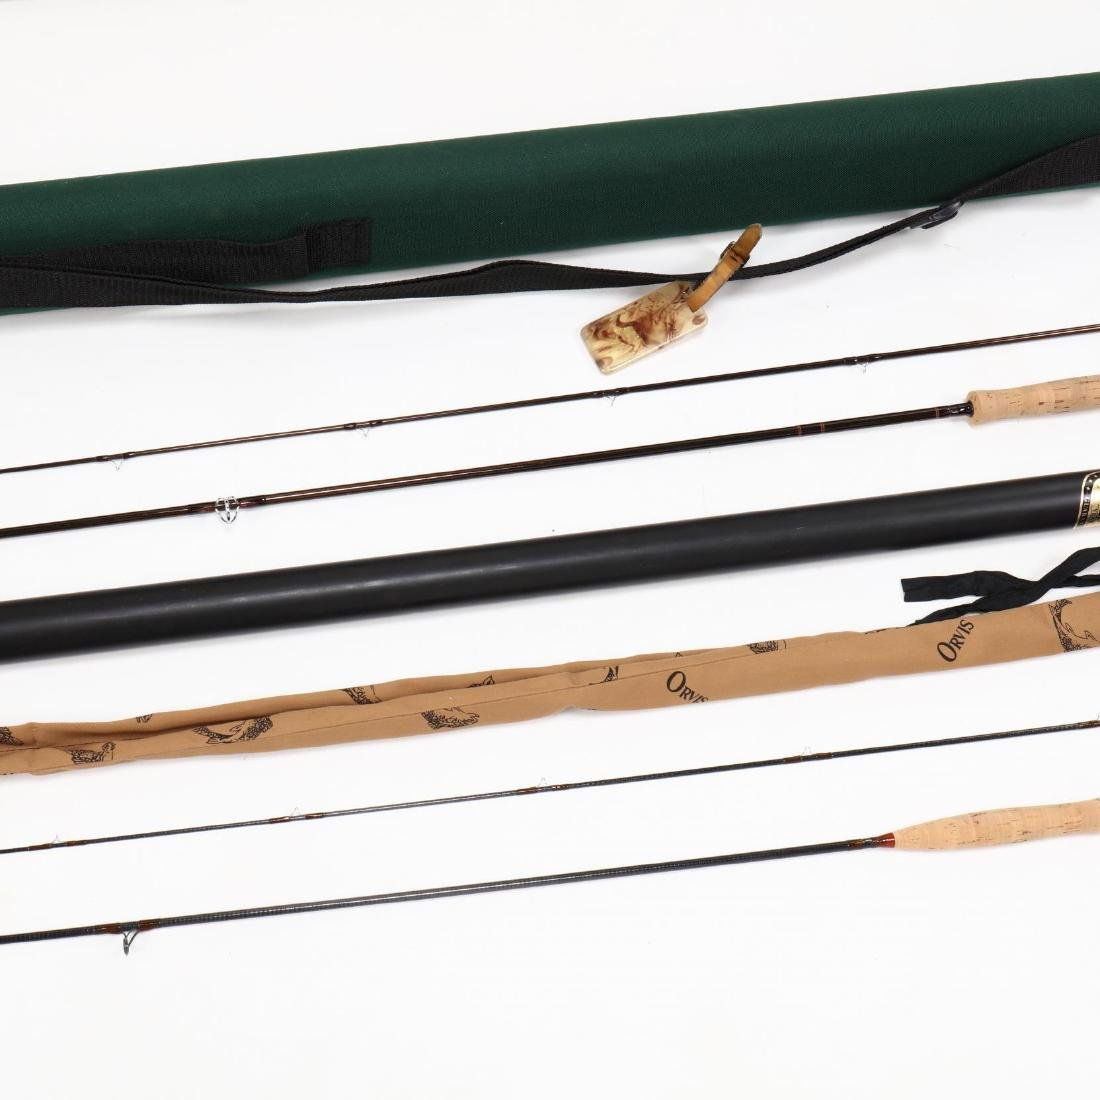 Orivs Graphite Fly Rod and Sage Graphite Fly Rod - 4